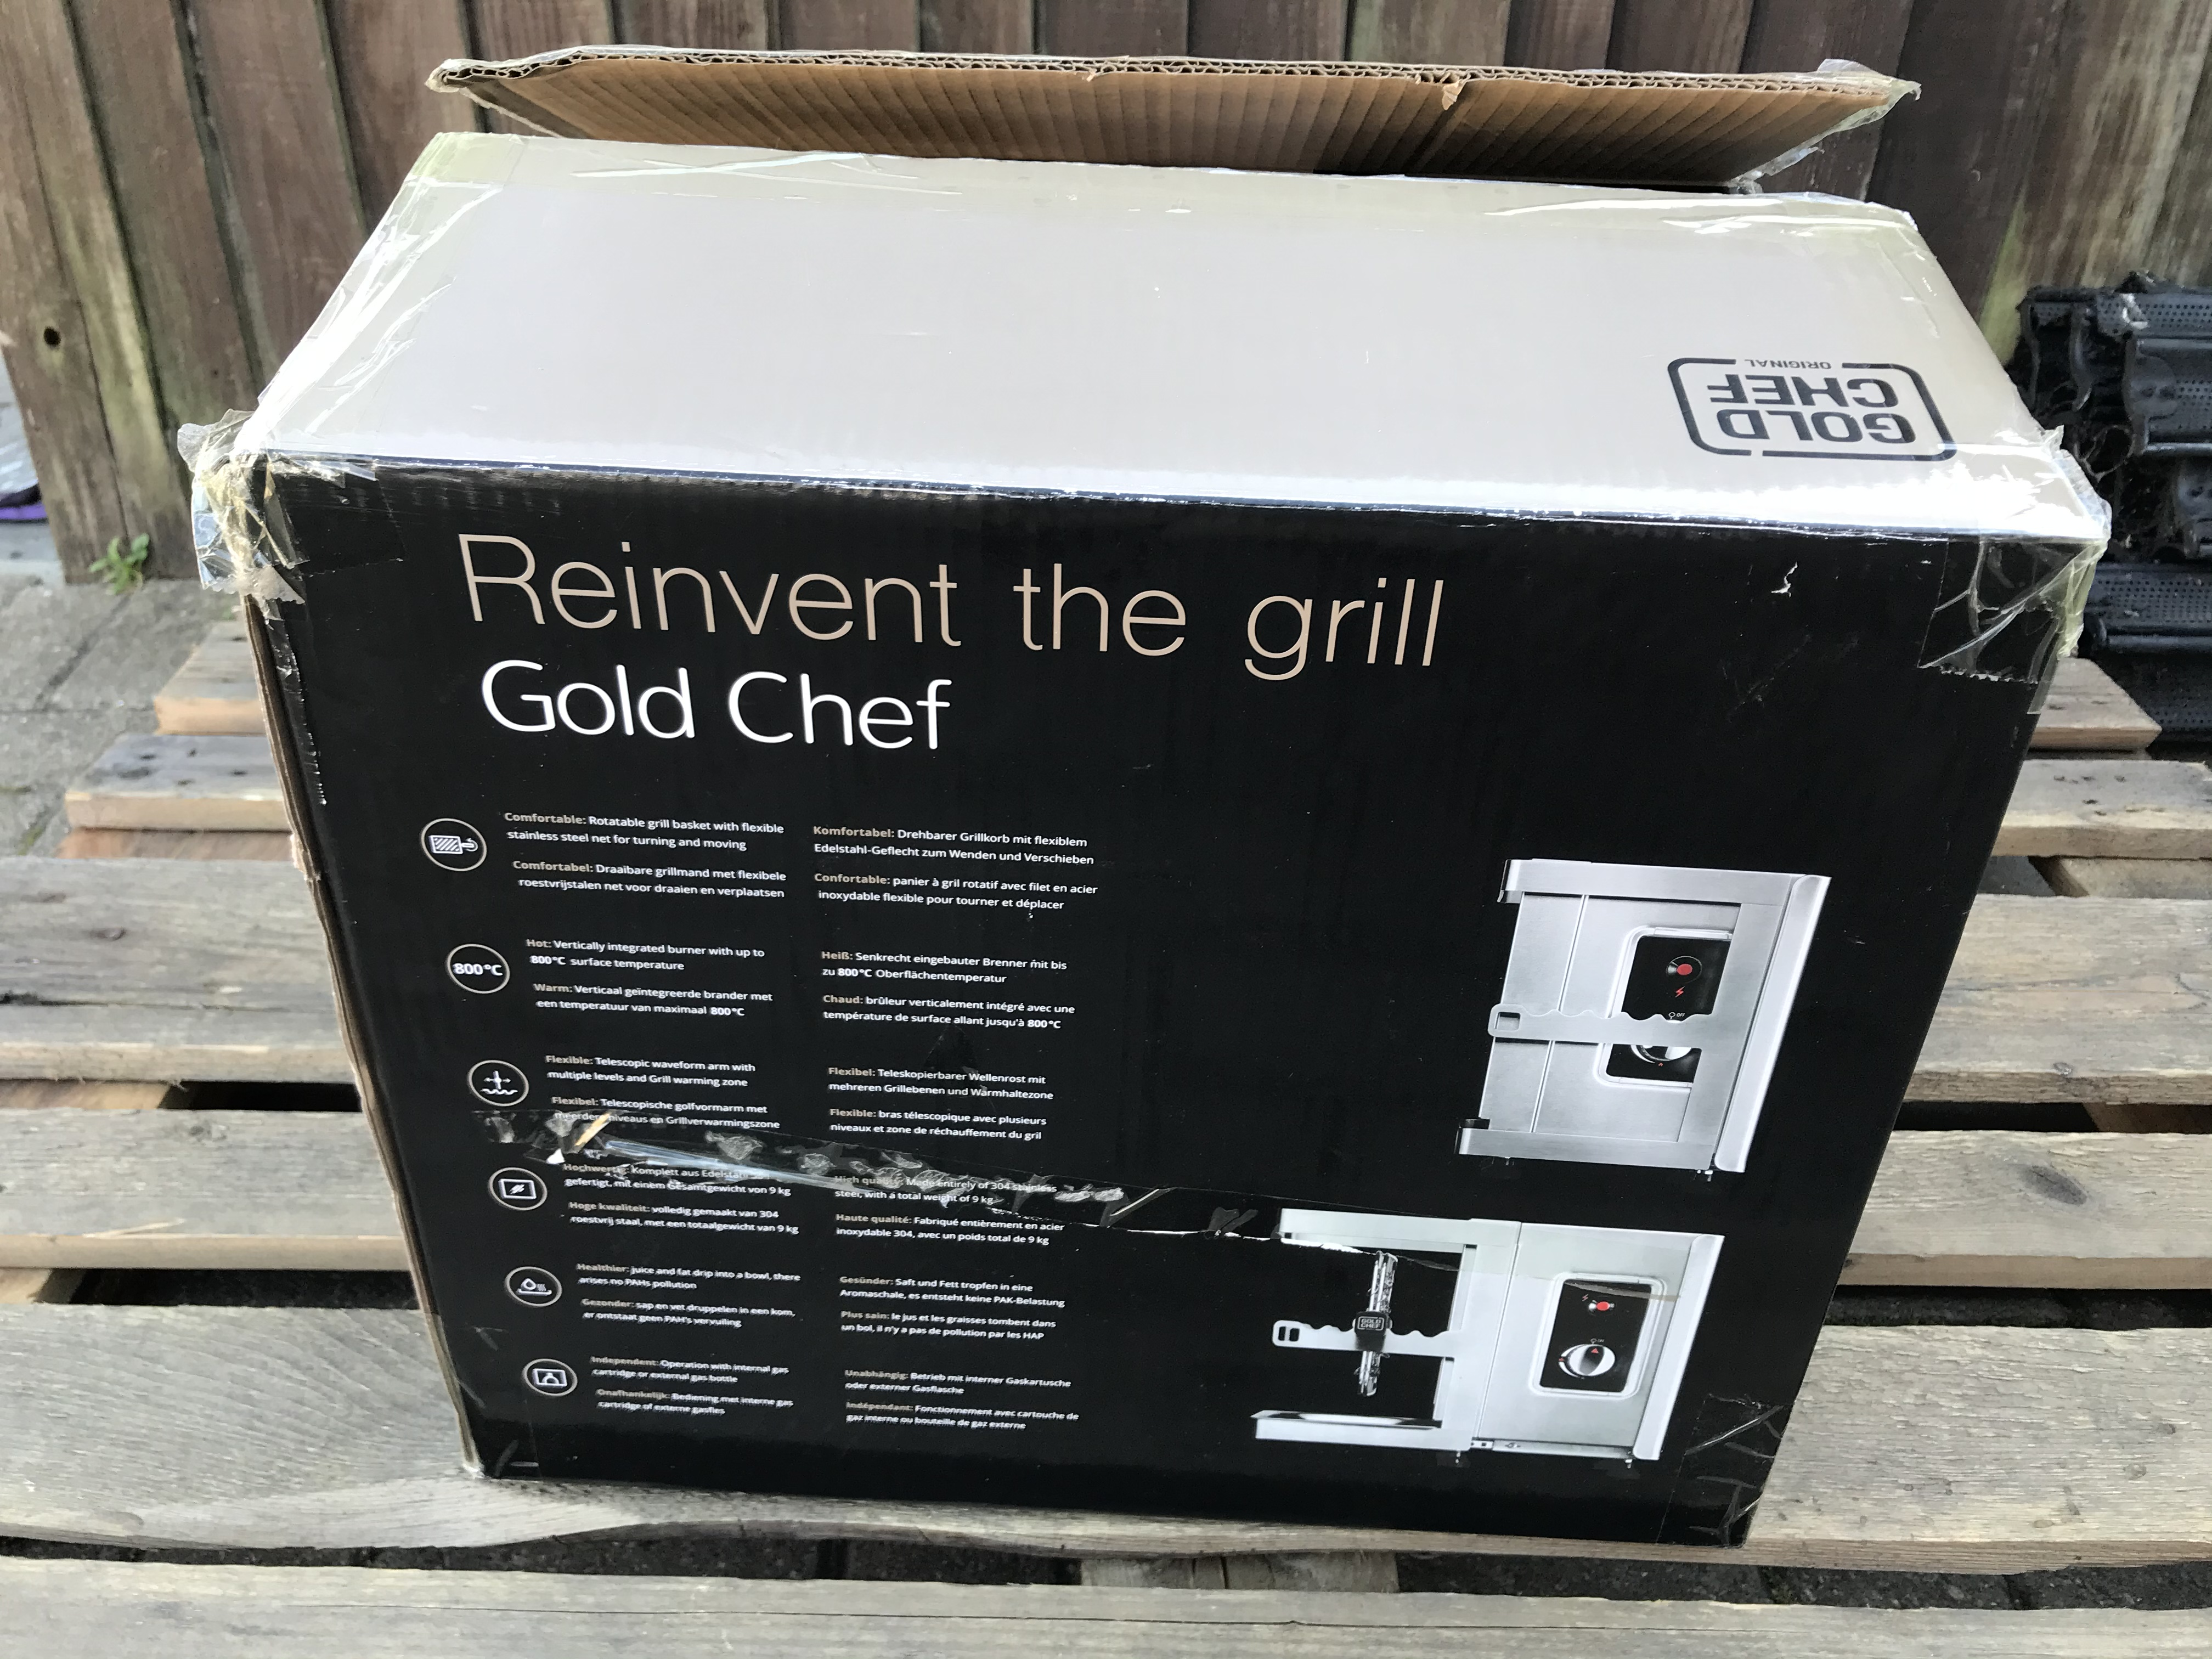 GOLD CHEF TWO 800C ROTISSERIE GRILL - Image 3 of 6